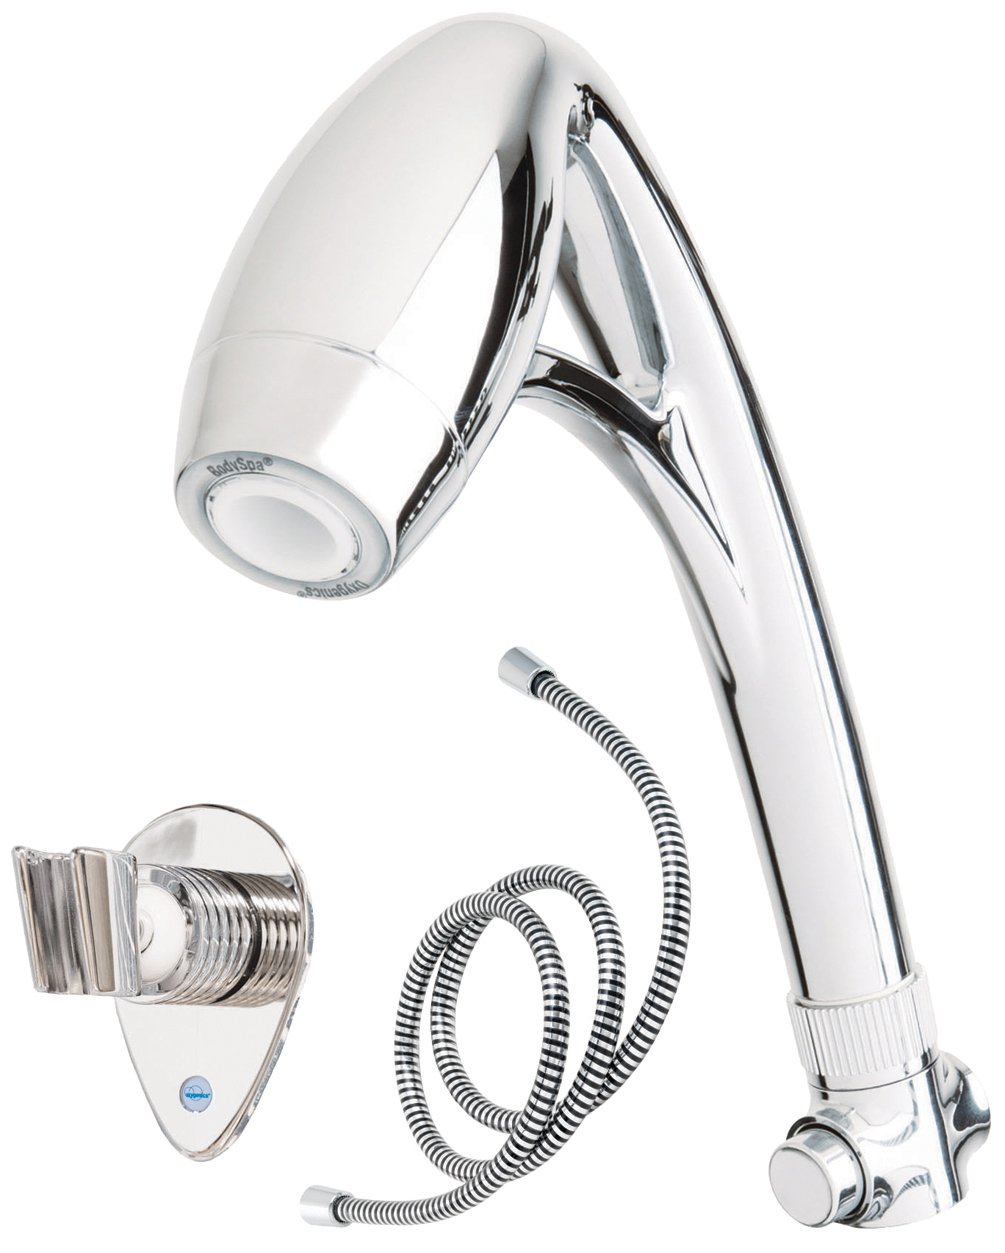 ETL 26181 Plastic Body Spa Oxygenics Shower with 60'' Hose